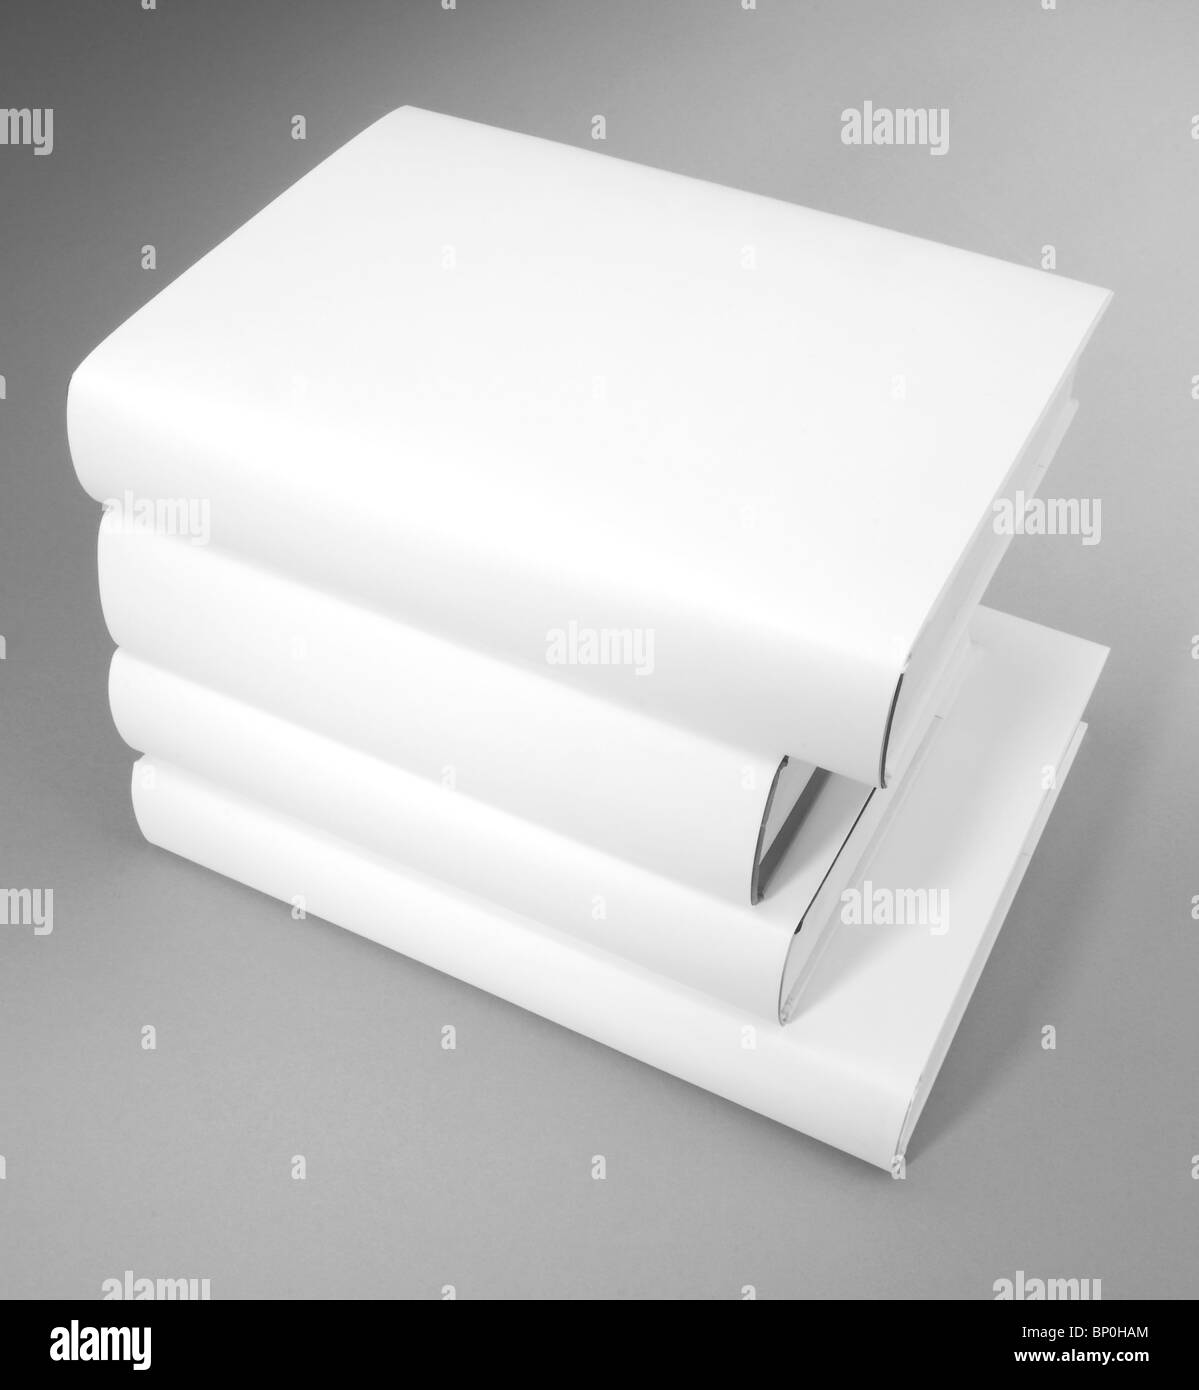 A pile of various size of hardcover books - Stock Image